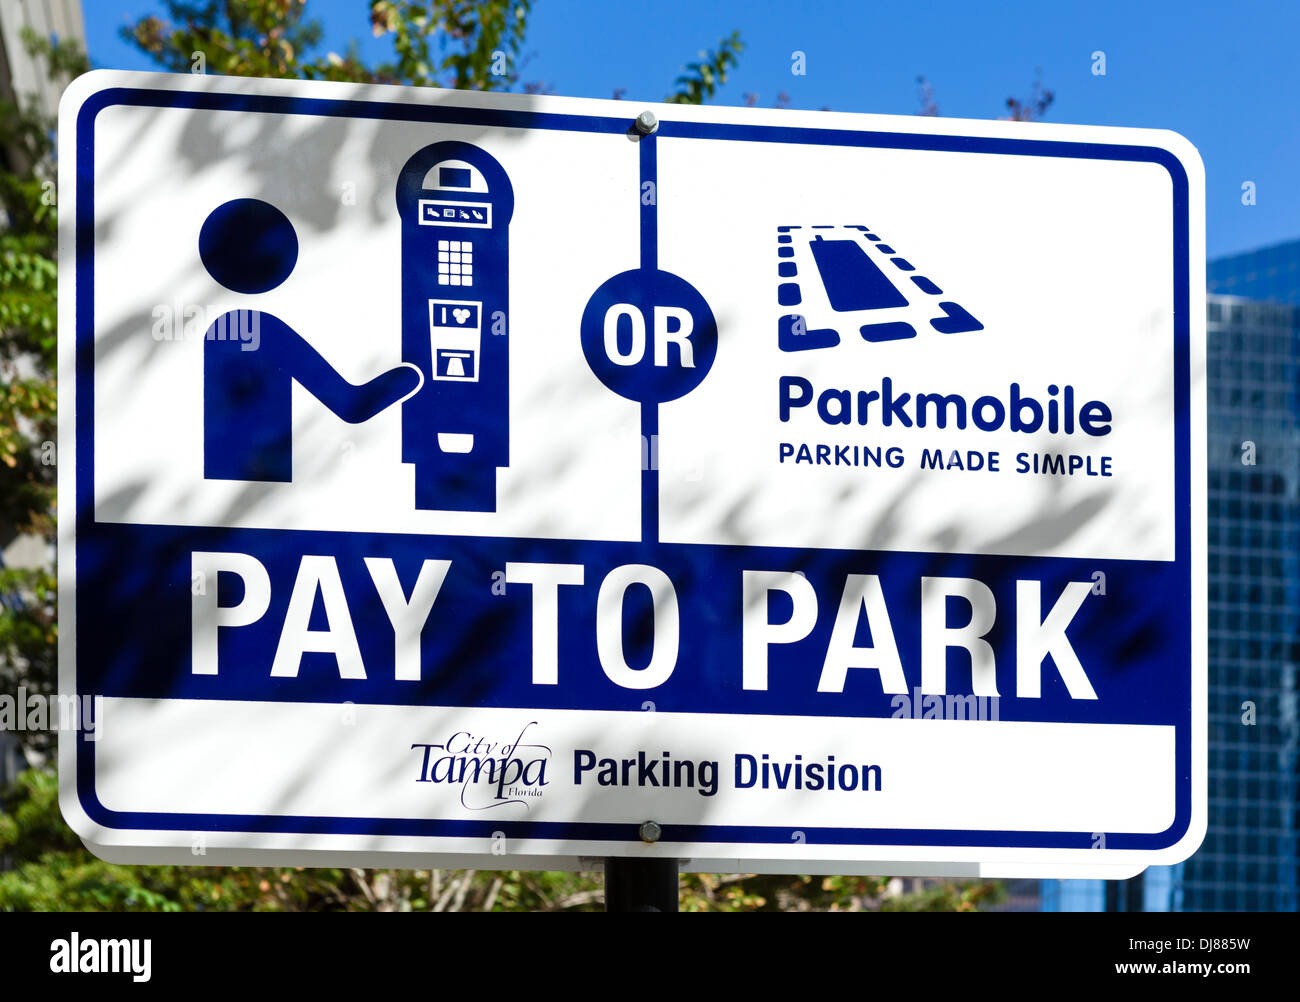 Pay to Park sign, centralised street parking system, Tampa, Florida, USA - Stock Image